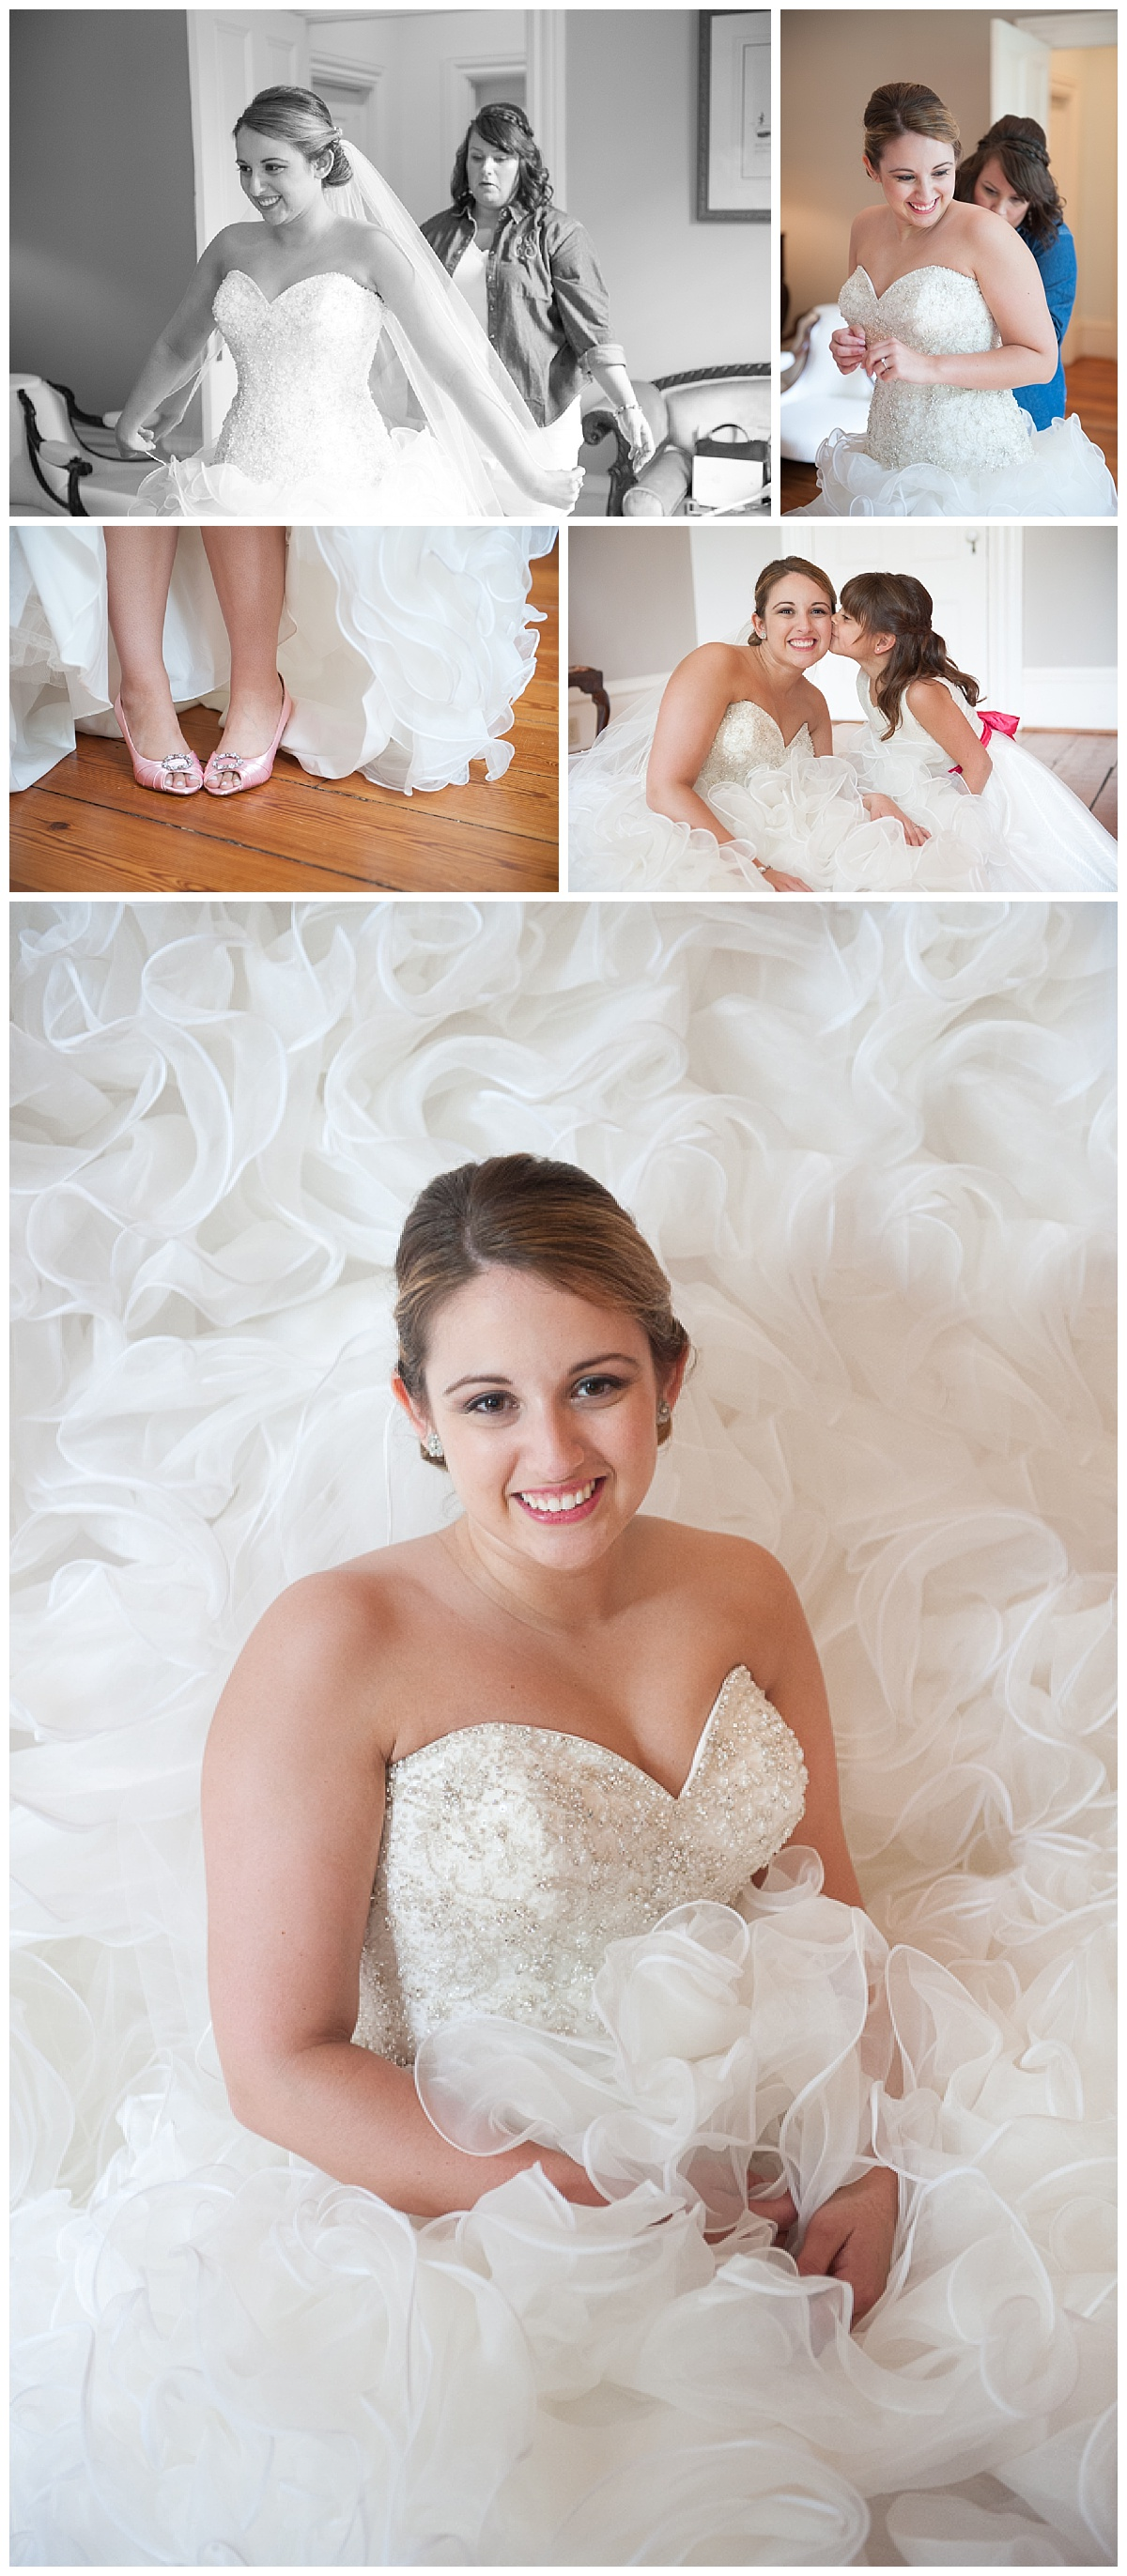 Lace house wedding with big princess gown